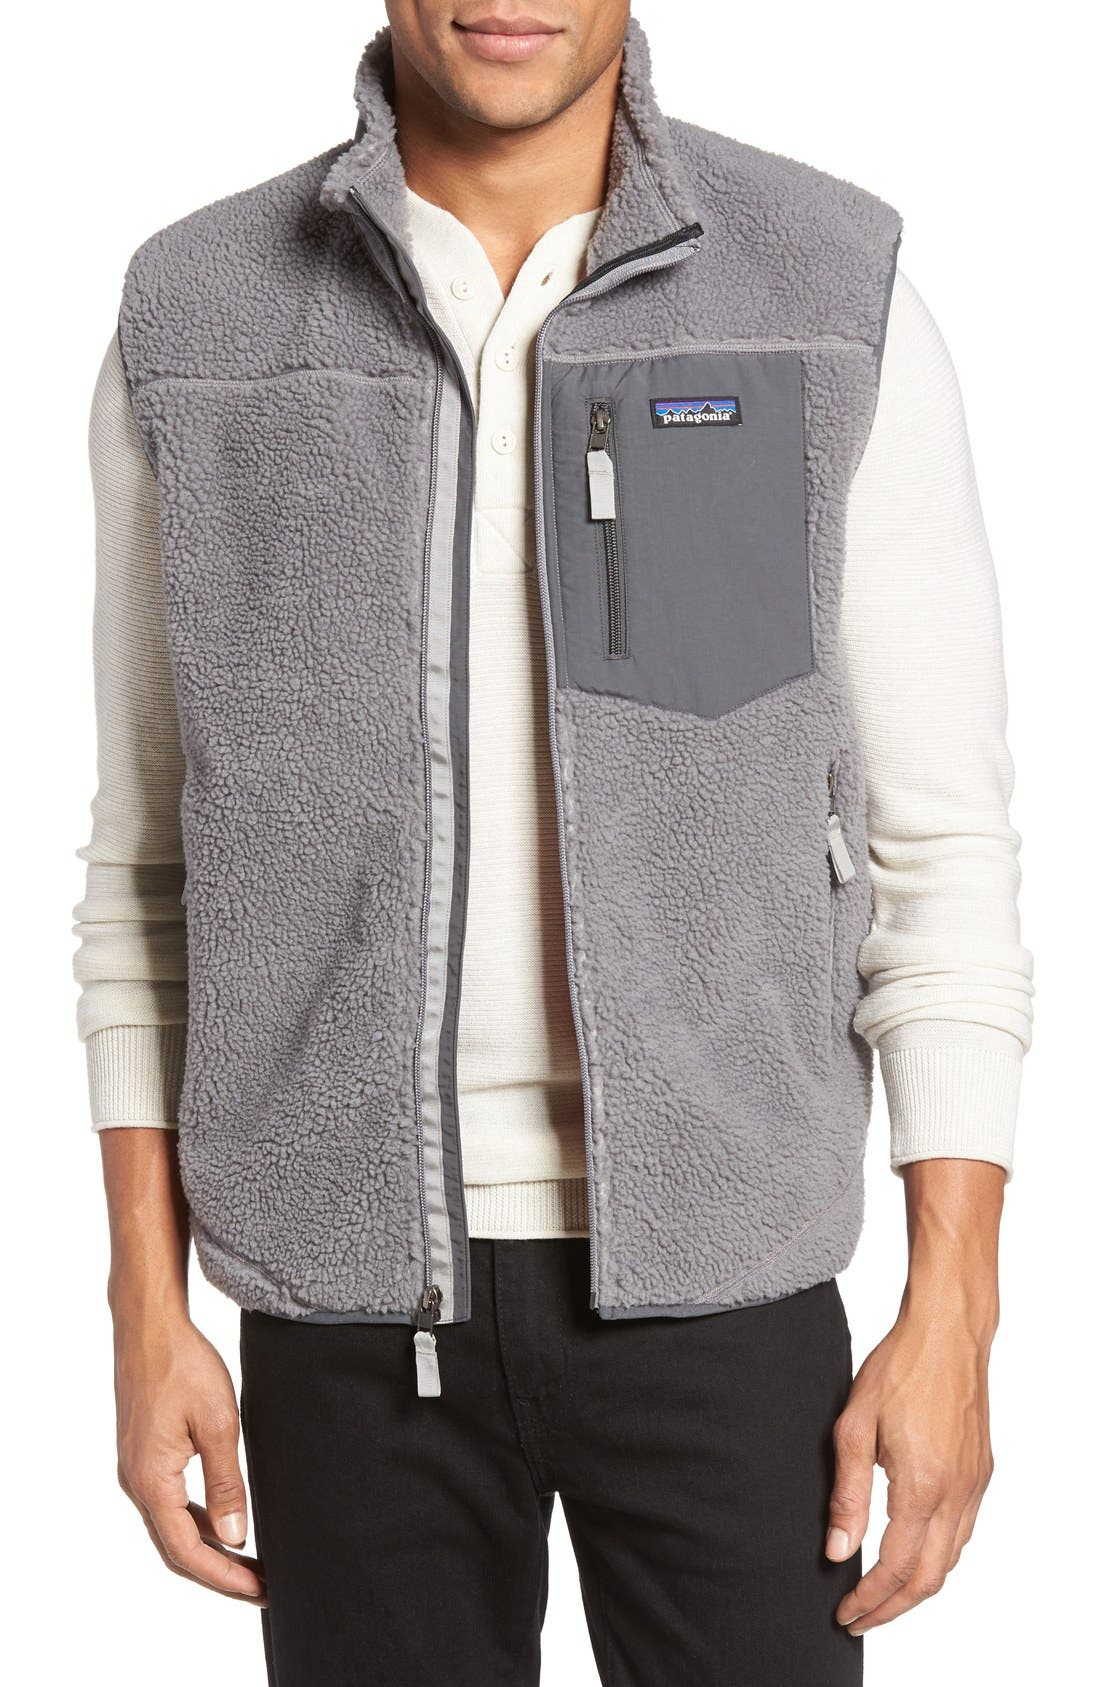 Classic Retro-X<sup>®</sup> Waterproof Vest,                         Main,                         color, Feather Grey